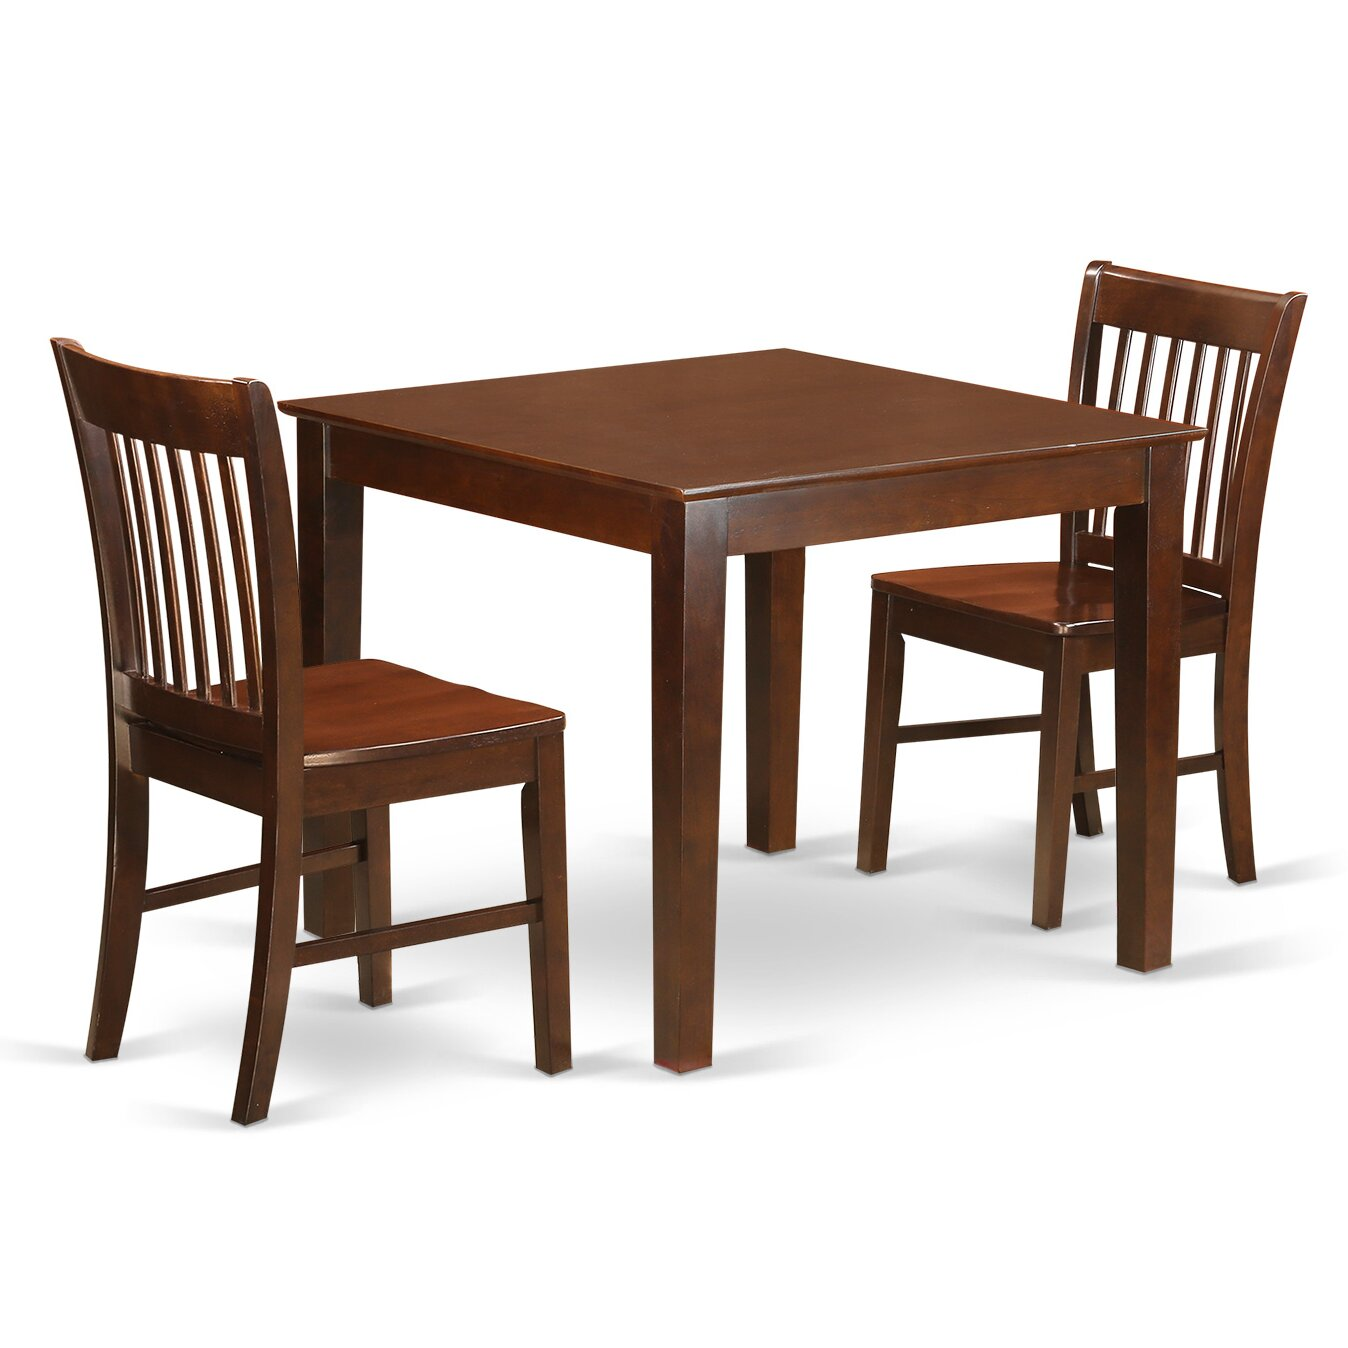 East West Oxford 3 Piece Dining Set